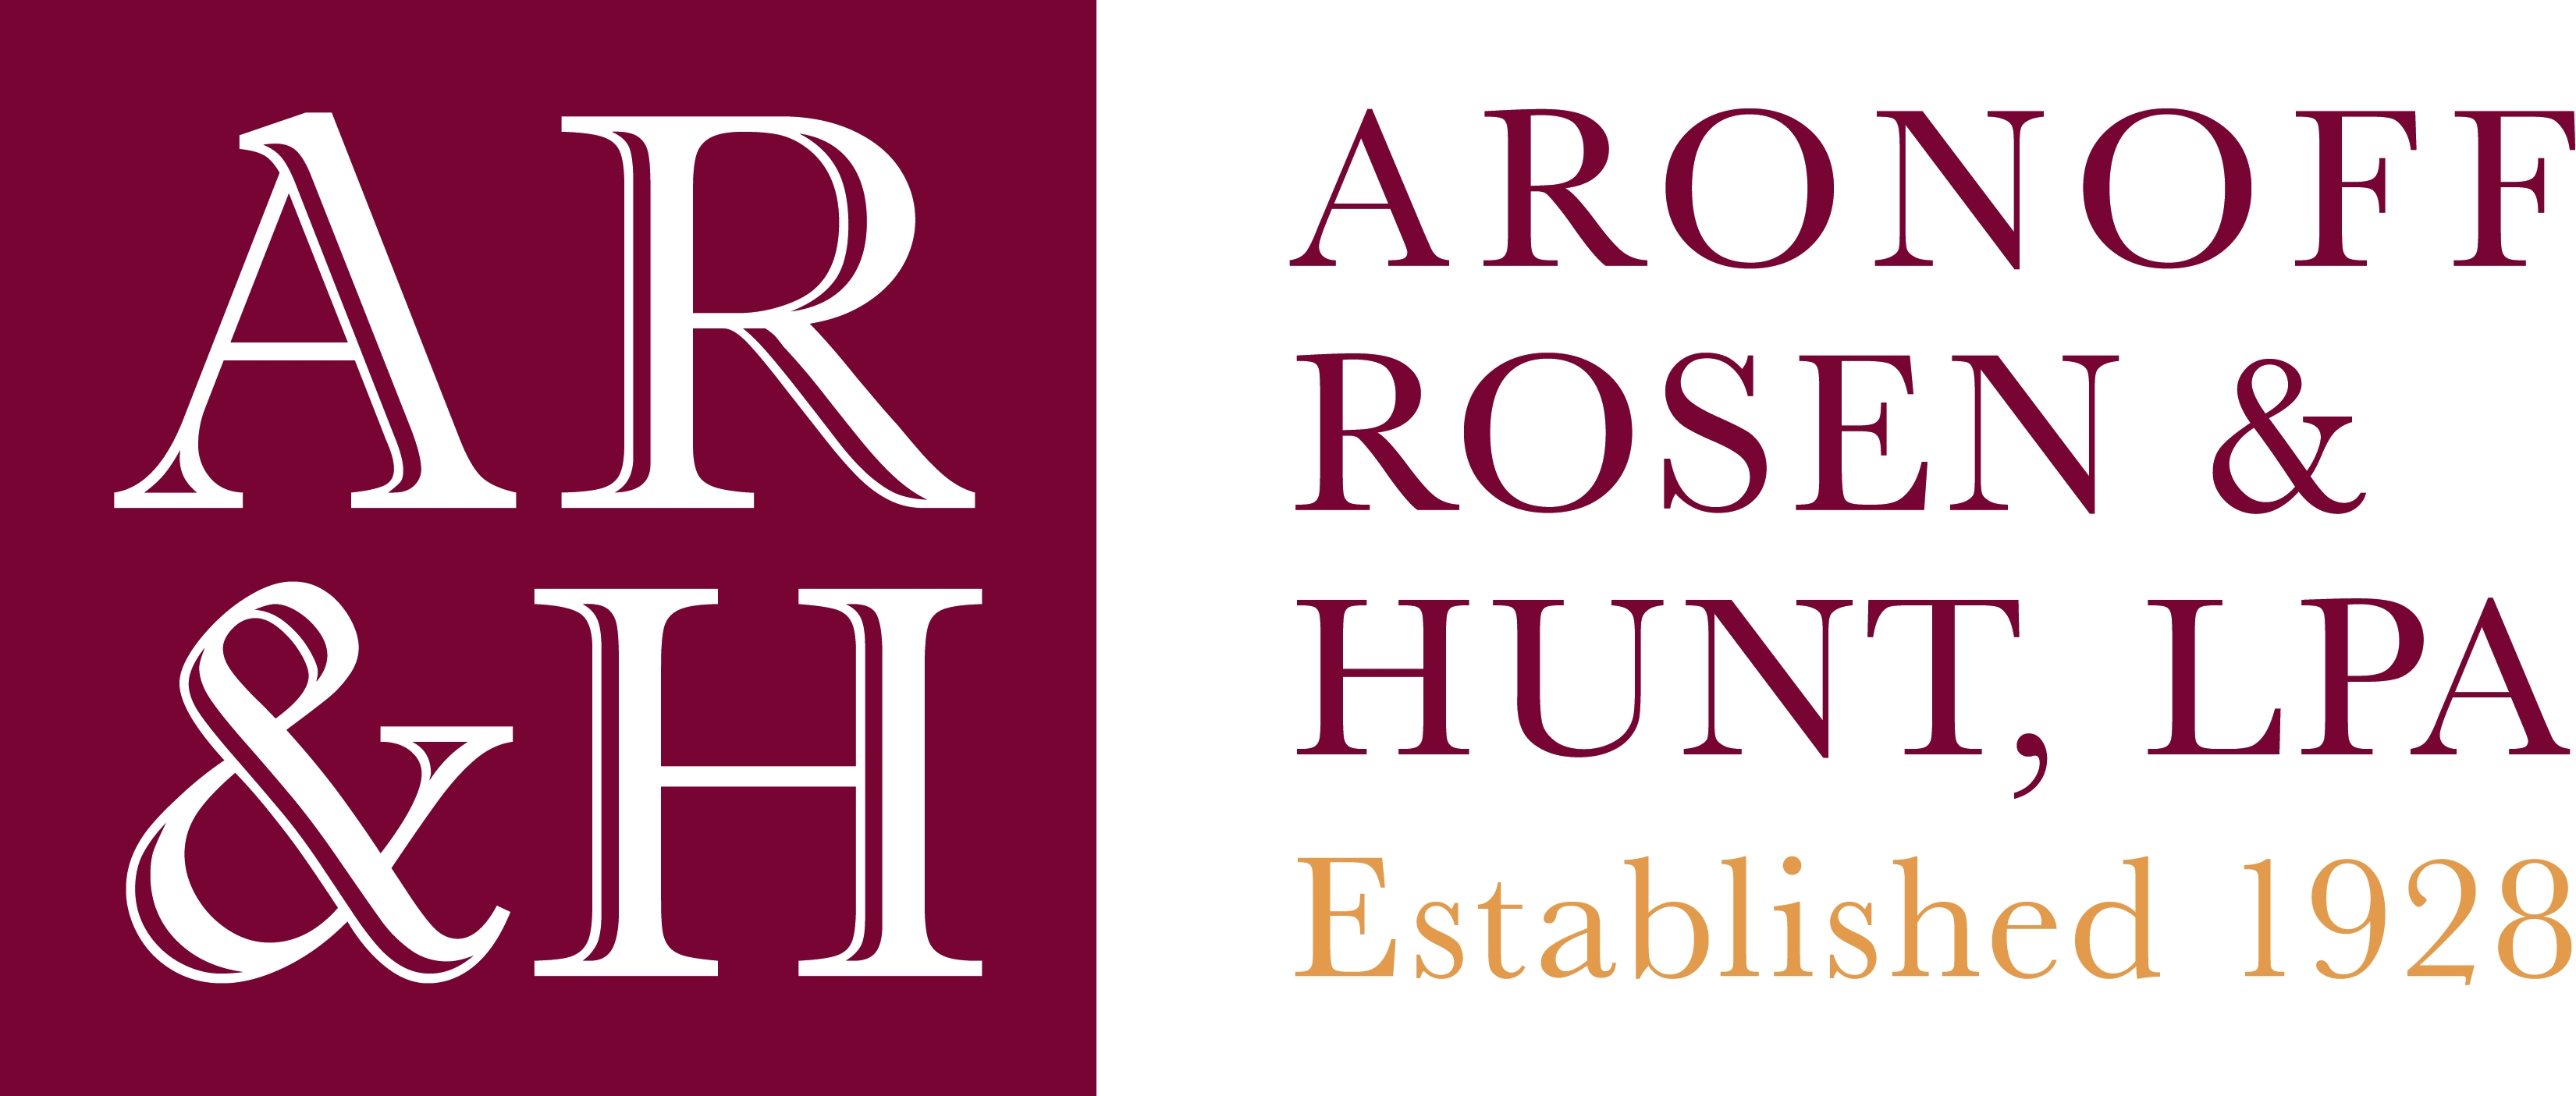 Aronoff, Rosen, & Hunt Co., L.P.A. logo